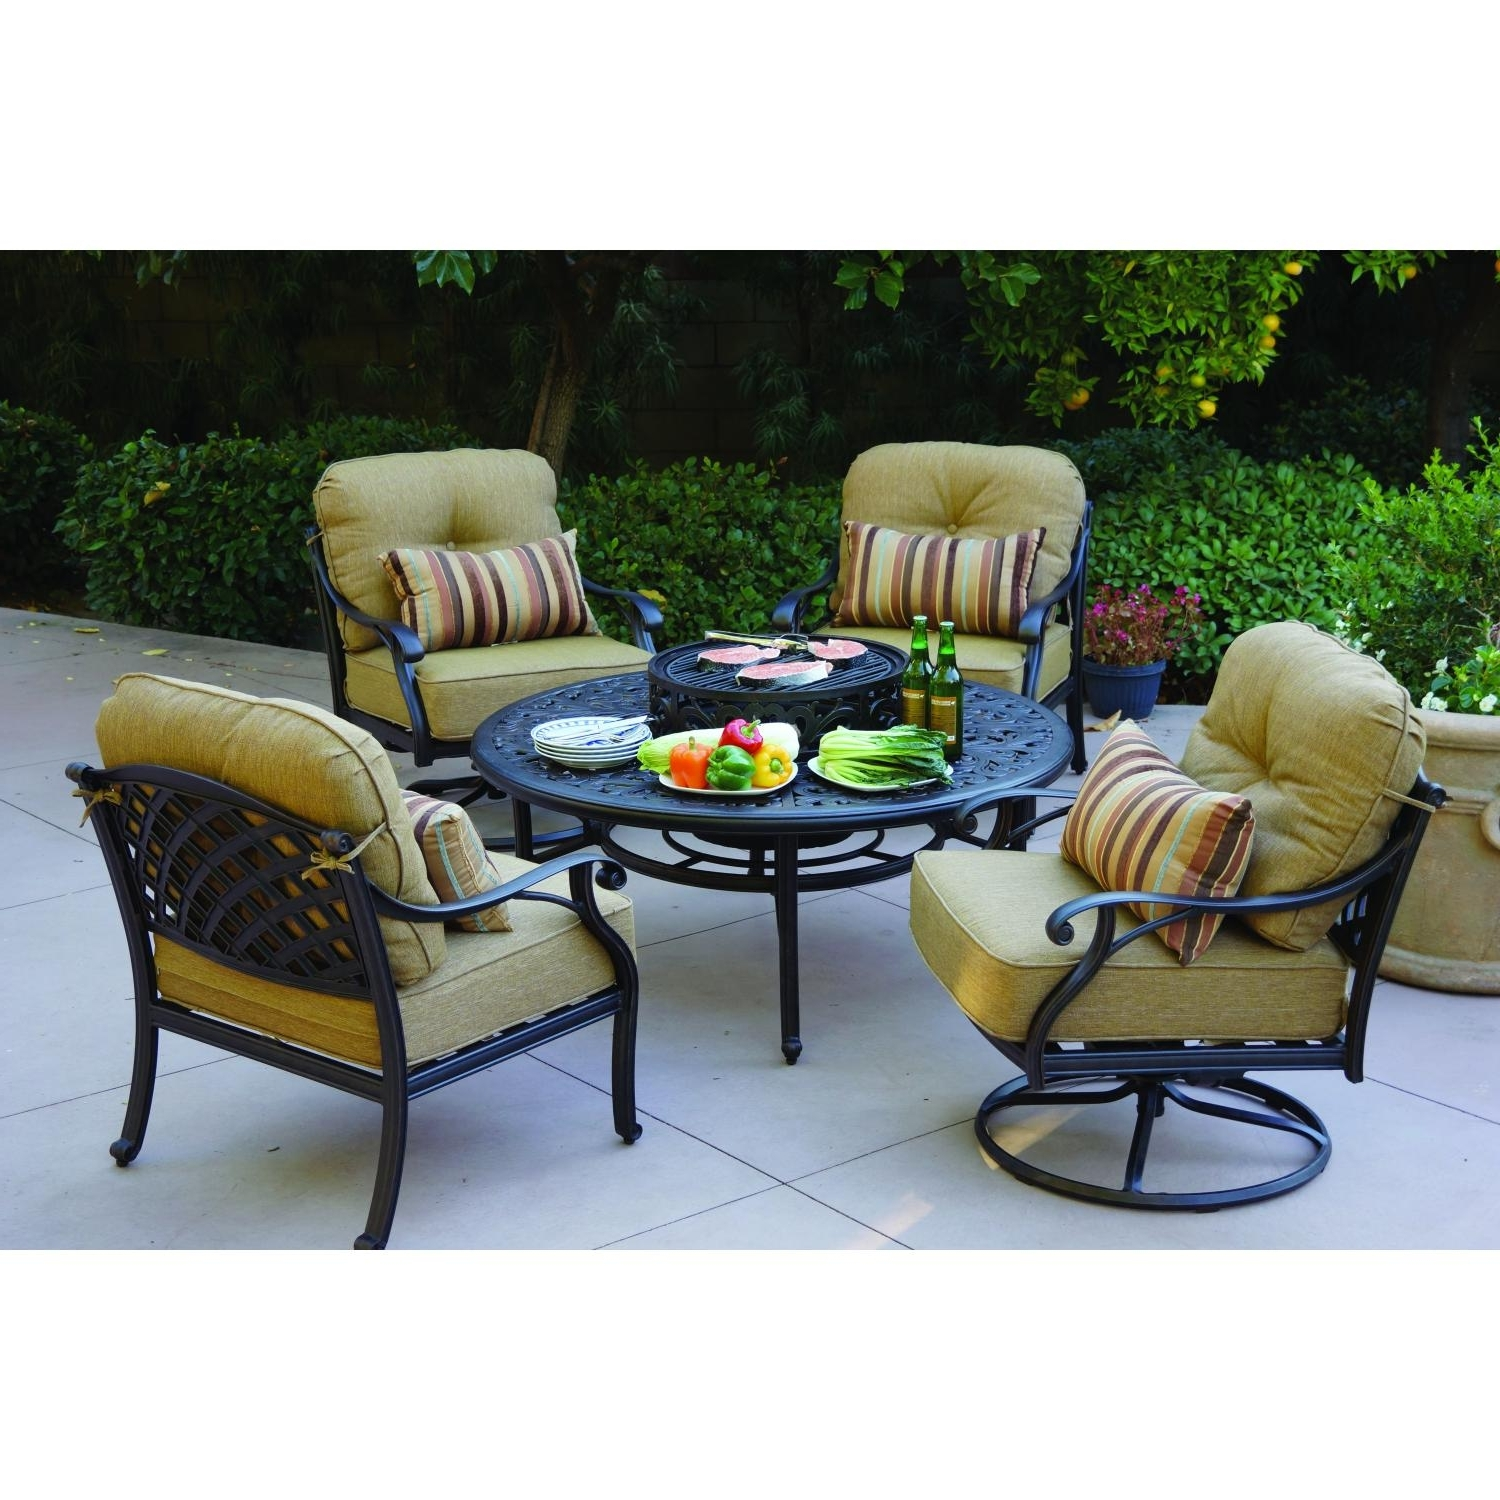 2019 Beautiful Round Propane Fire Pit Table And Chairs Conversation Sets Intended For Round Patio Conversation Sets (View 14 of 20)